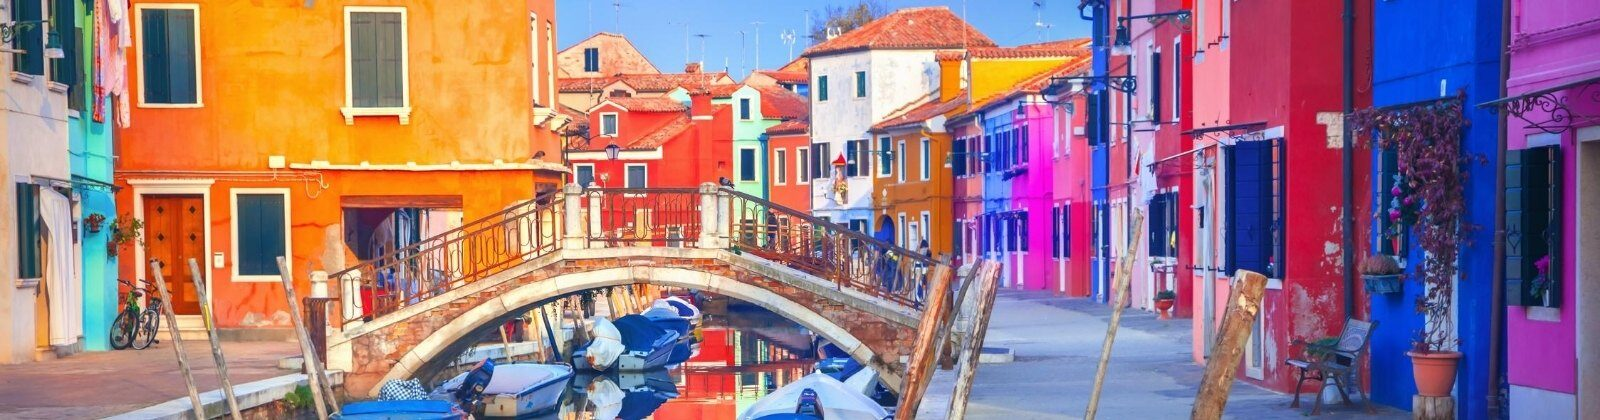 colorful houses on a canal in venice